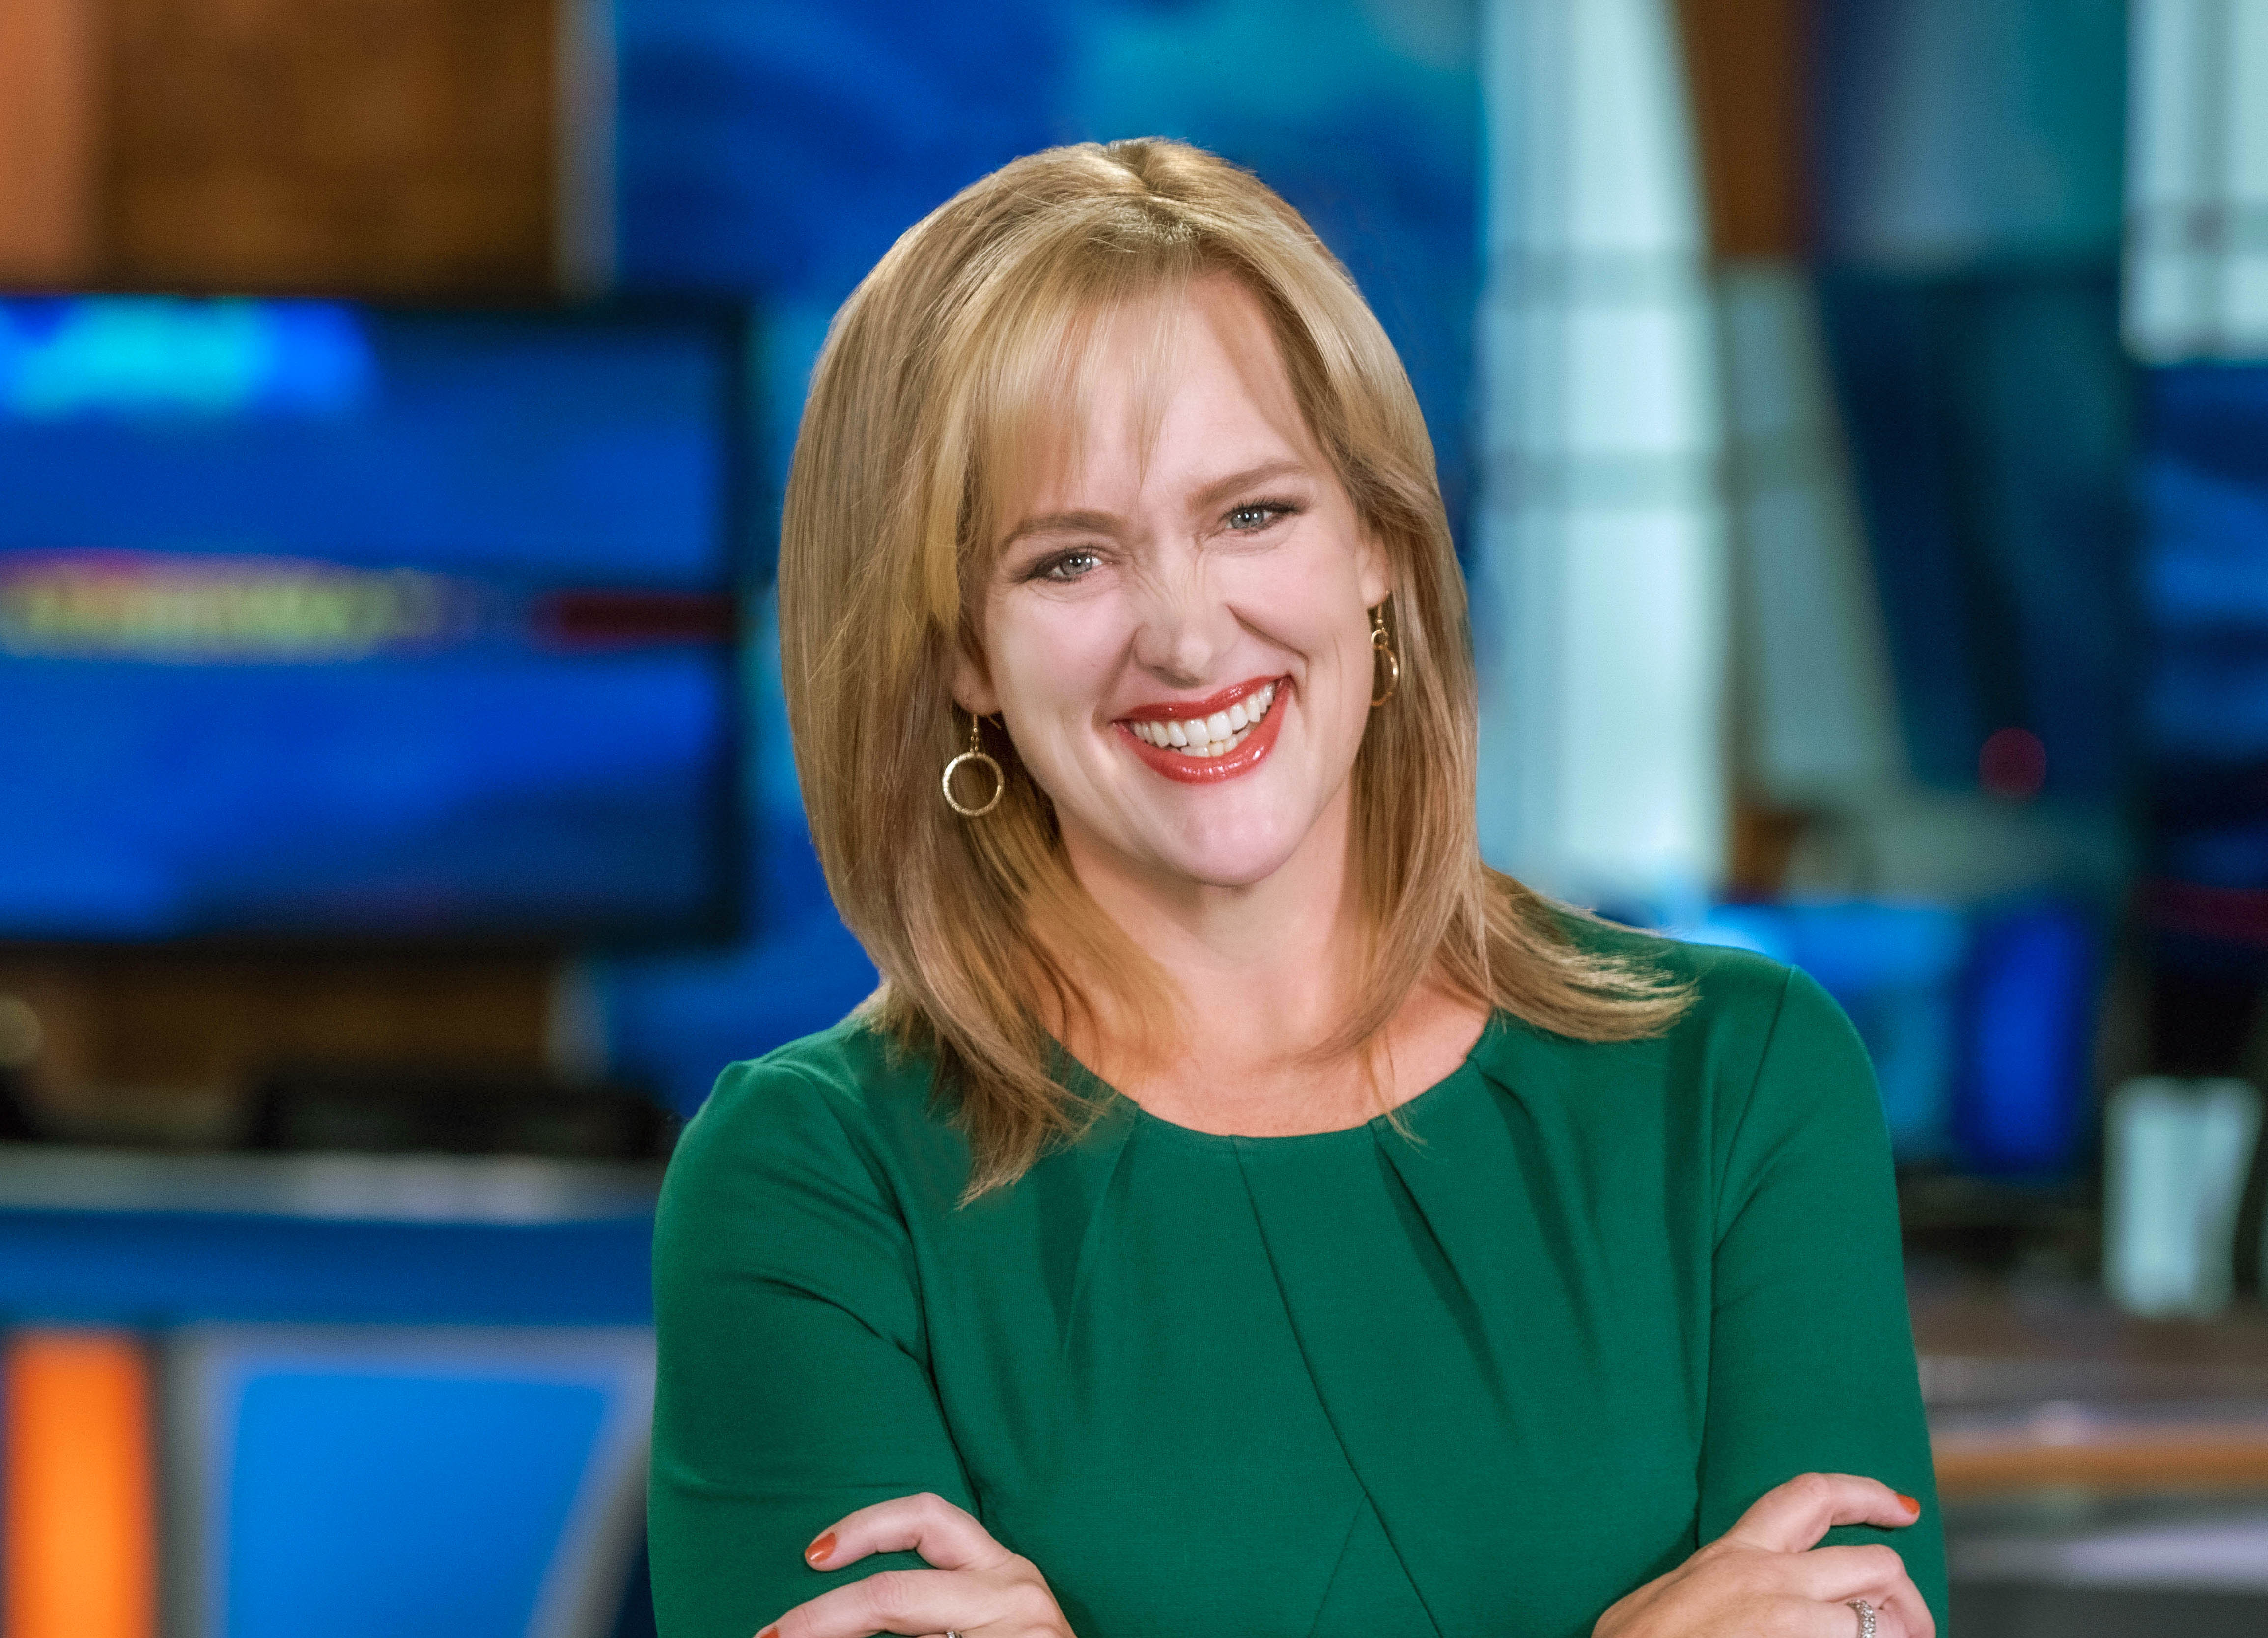 amy nay fox 13 news weight loss